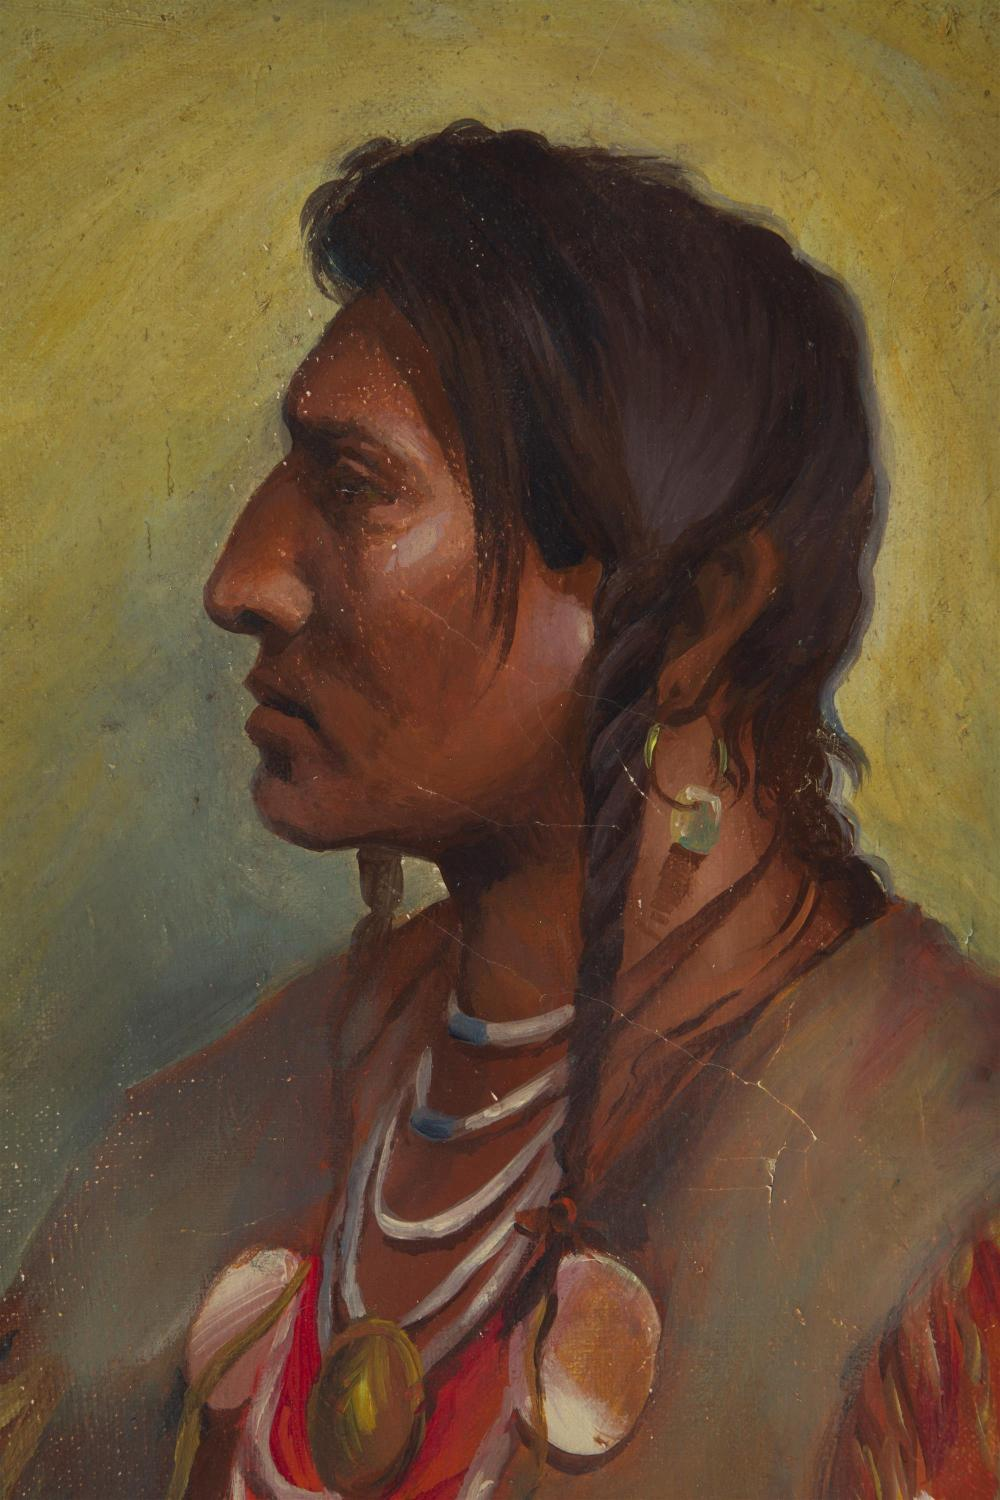 Joseph Henry Sharp, (1859-1953 Pasadena, CA), Sioux Indian in profile, 1903, Oil on canvas, 12.5